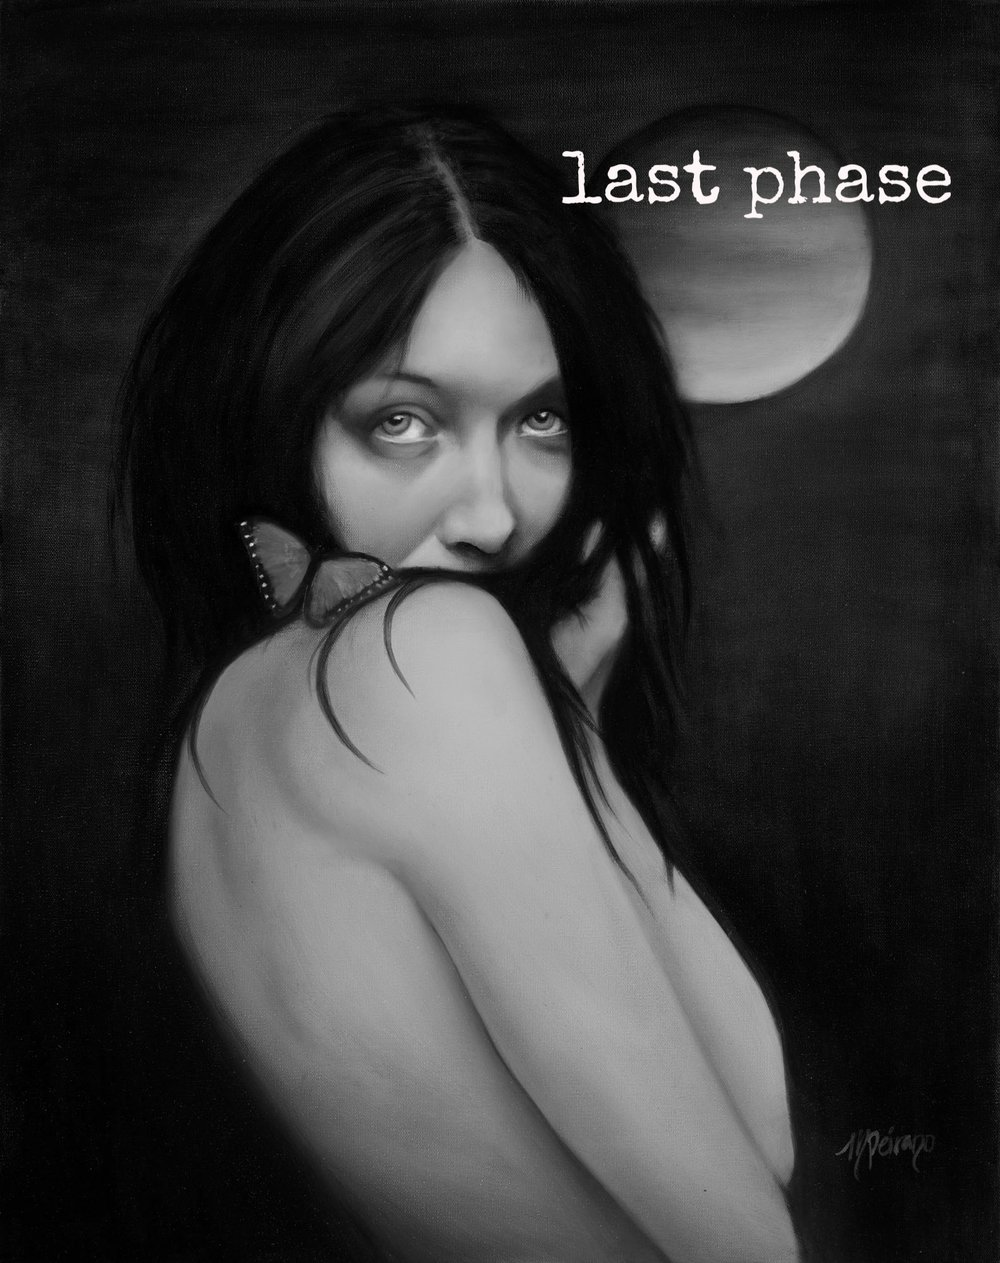 The moon wanesthe time of death nears and the old becomes compost for the newThe dark goddess rules the darkness with her white light and finally rests withinShe will arise to seduce me with precious gift sand I will celebrate -